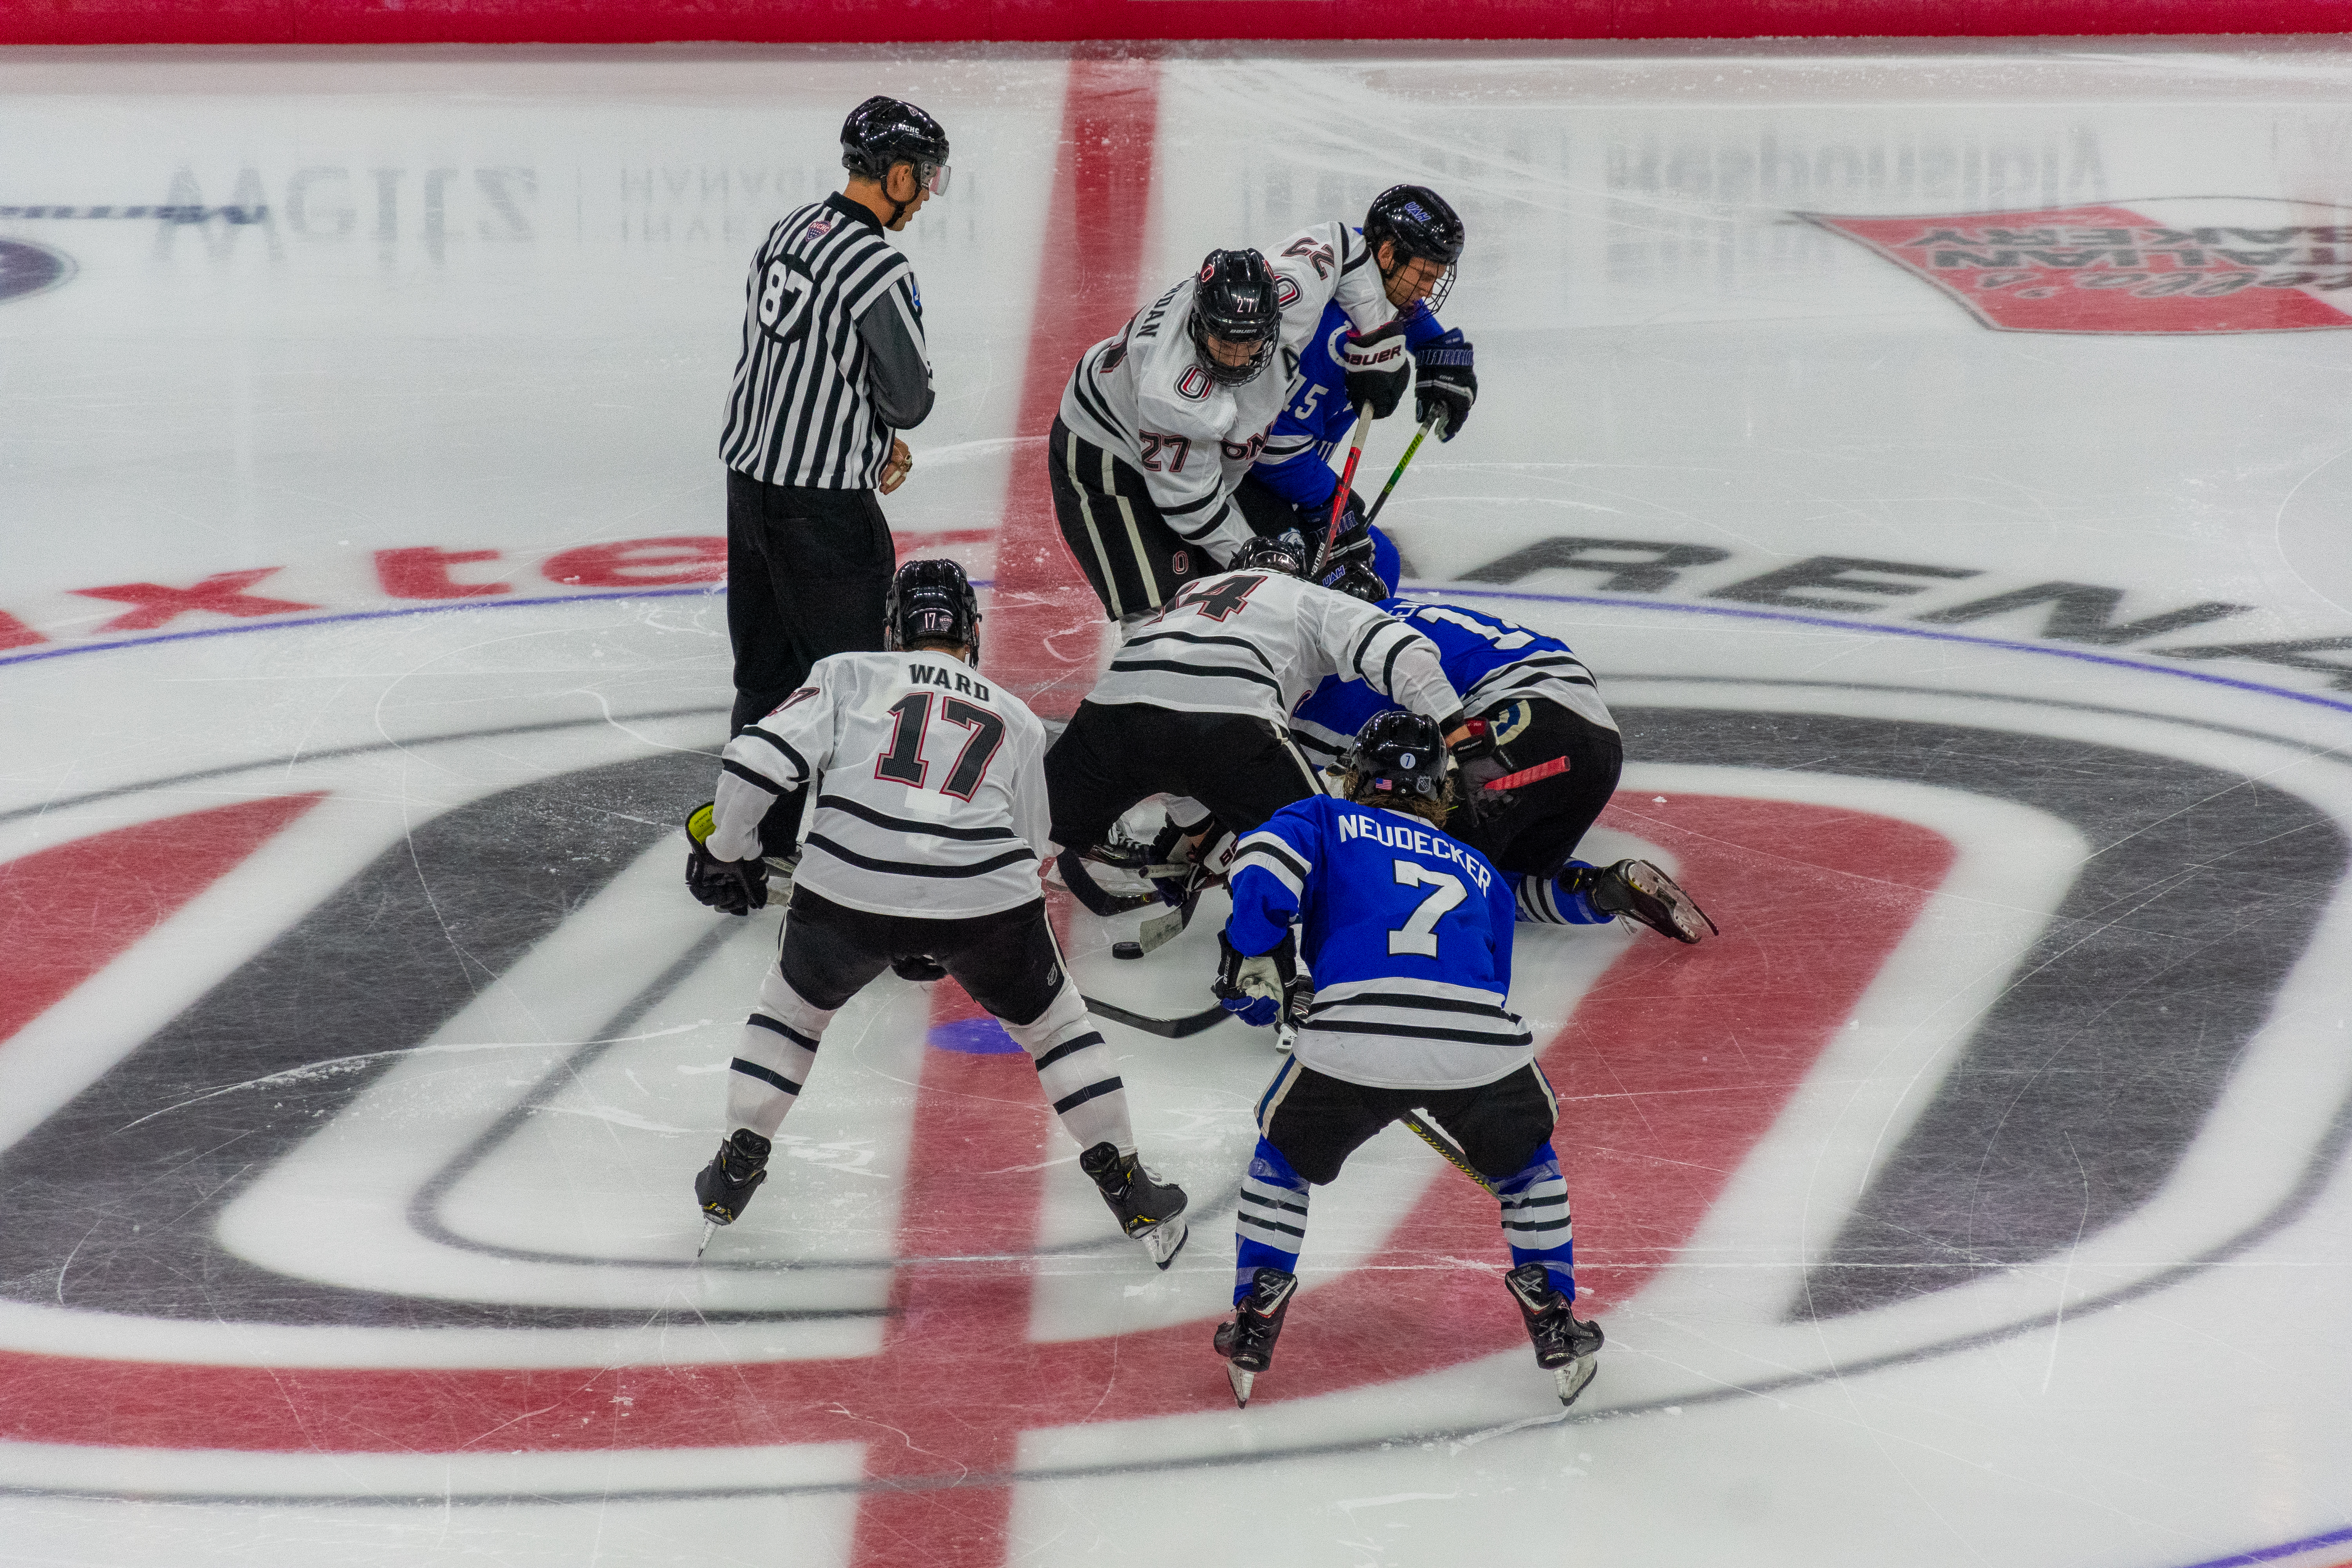 Several hockey players battle for the puck on the ice